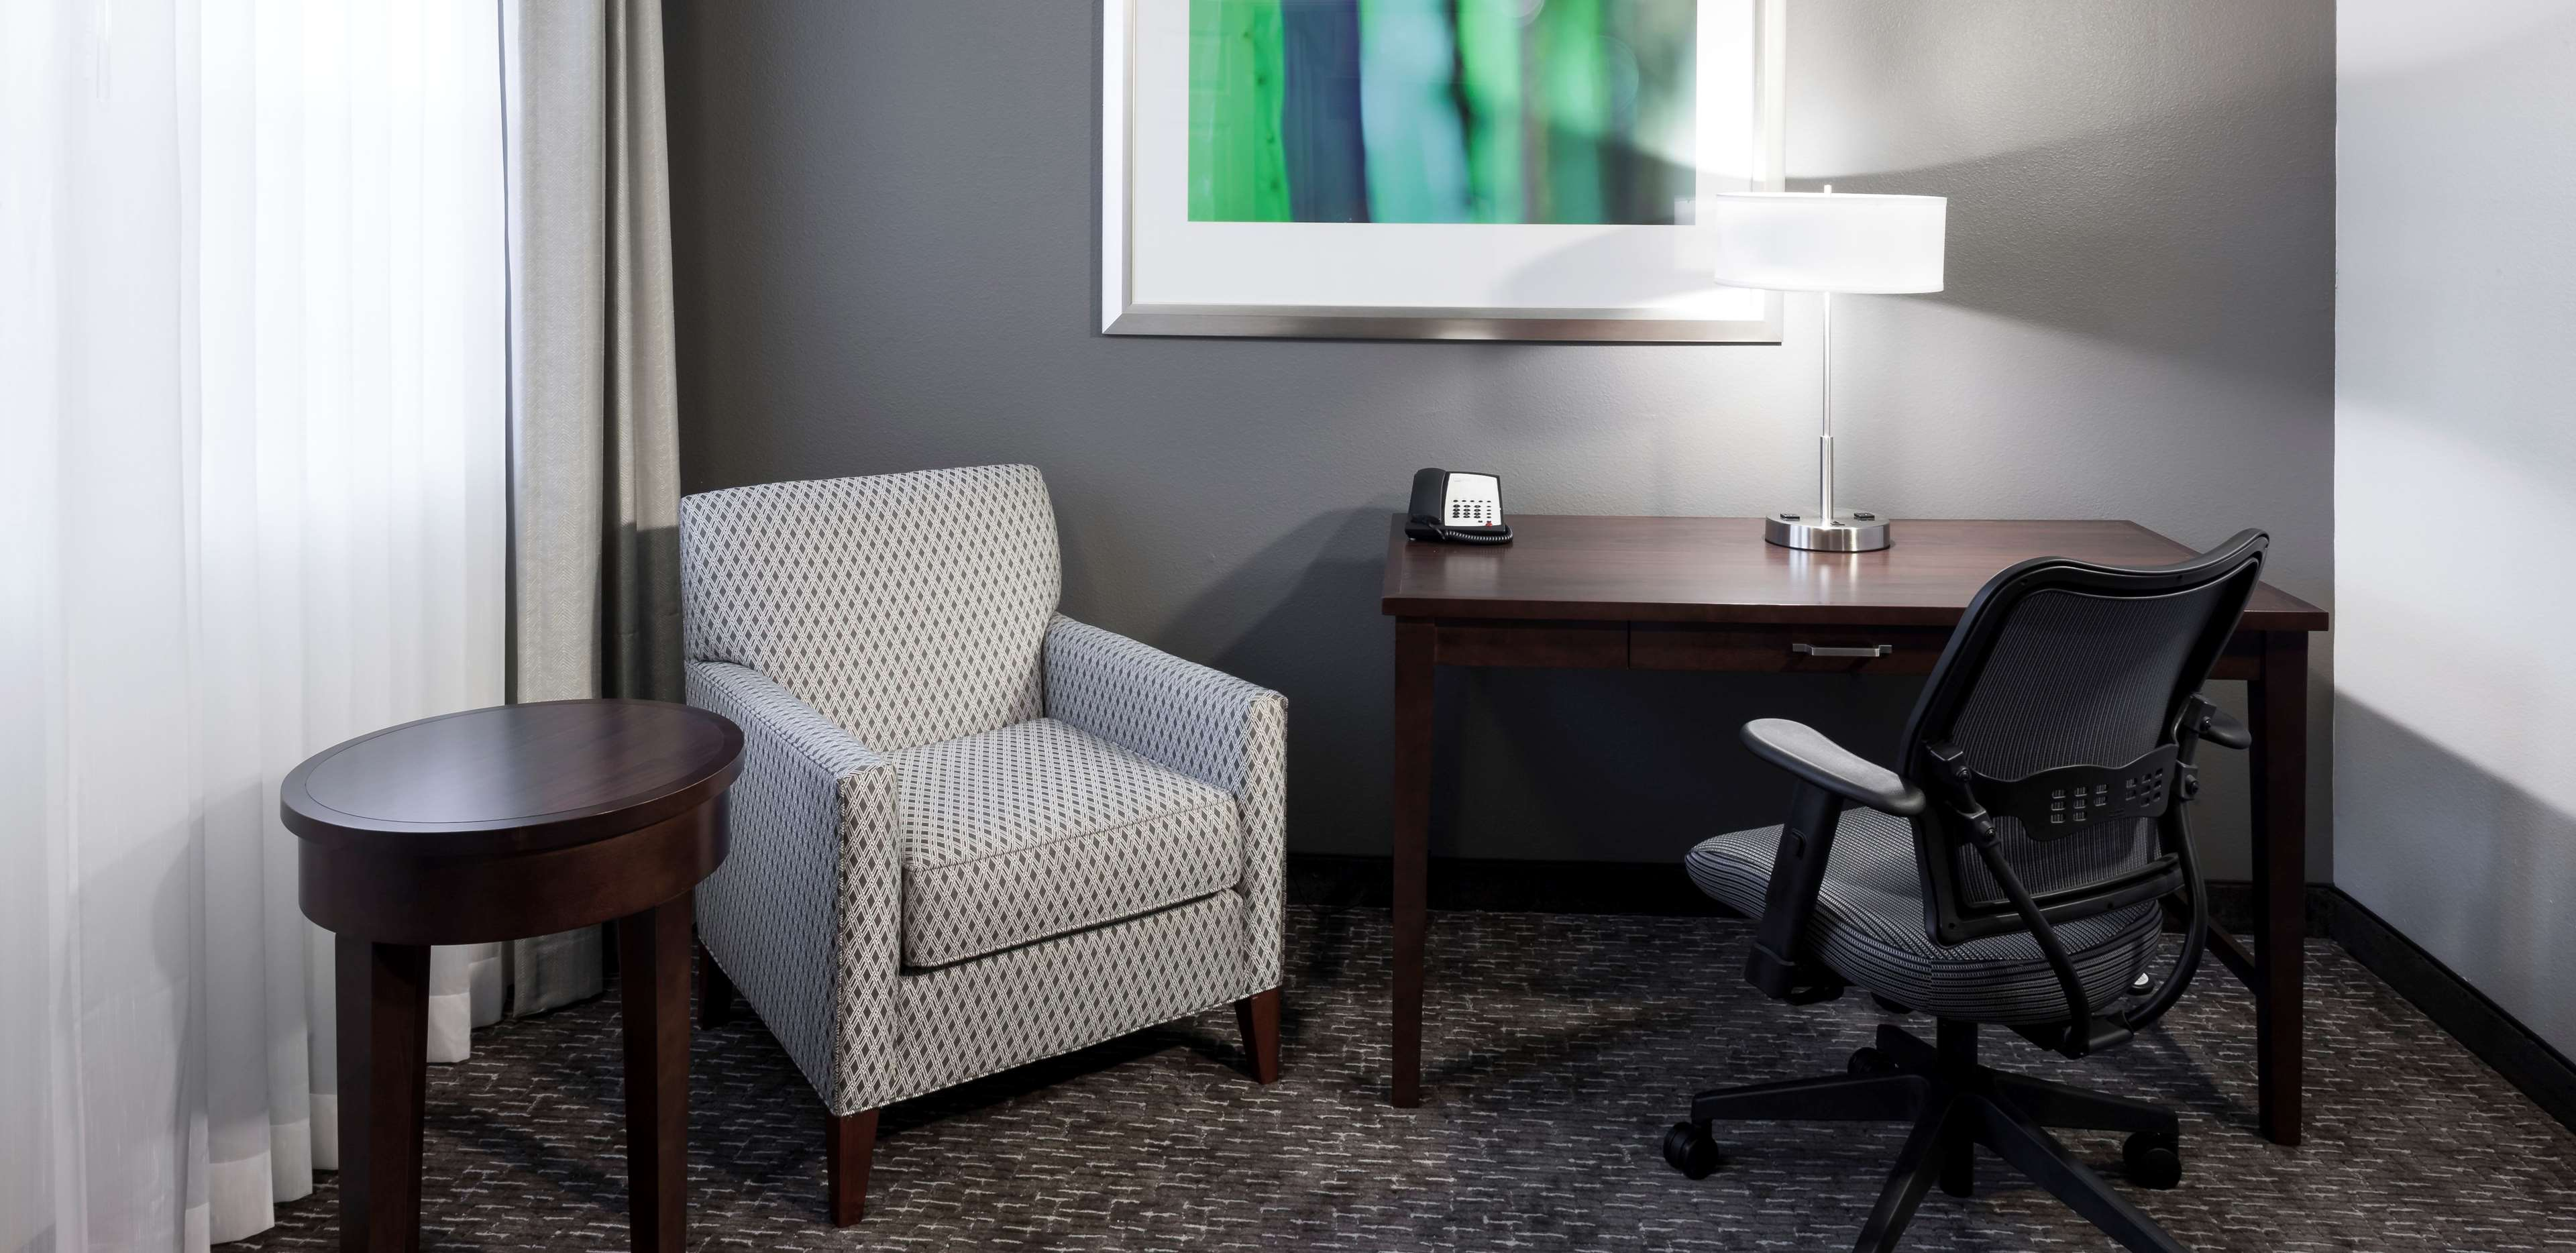 Homewood Suites by Hilton San Jose Airport-Silicon Valley image 17